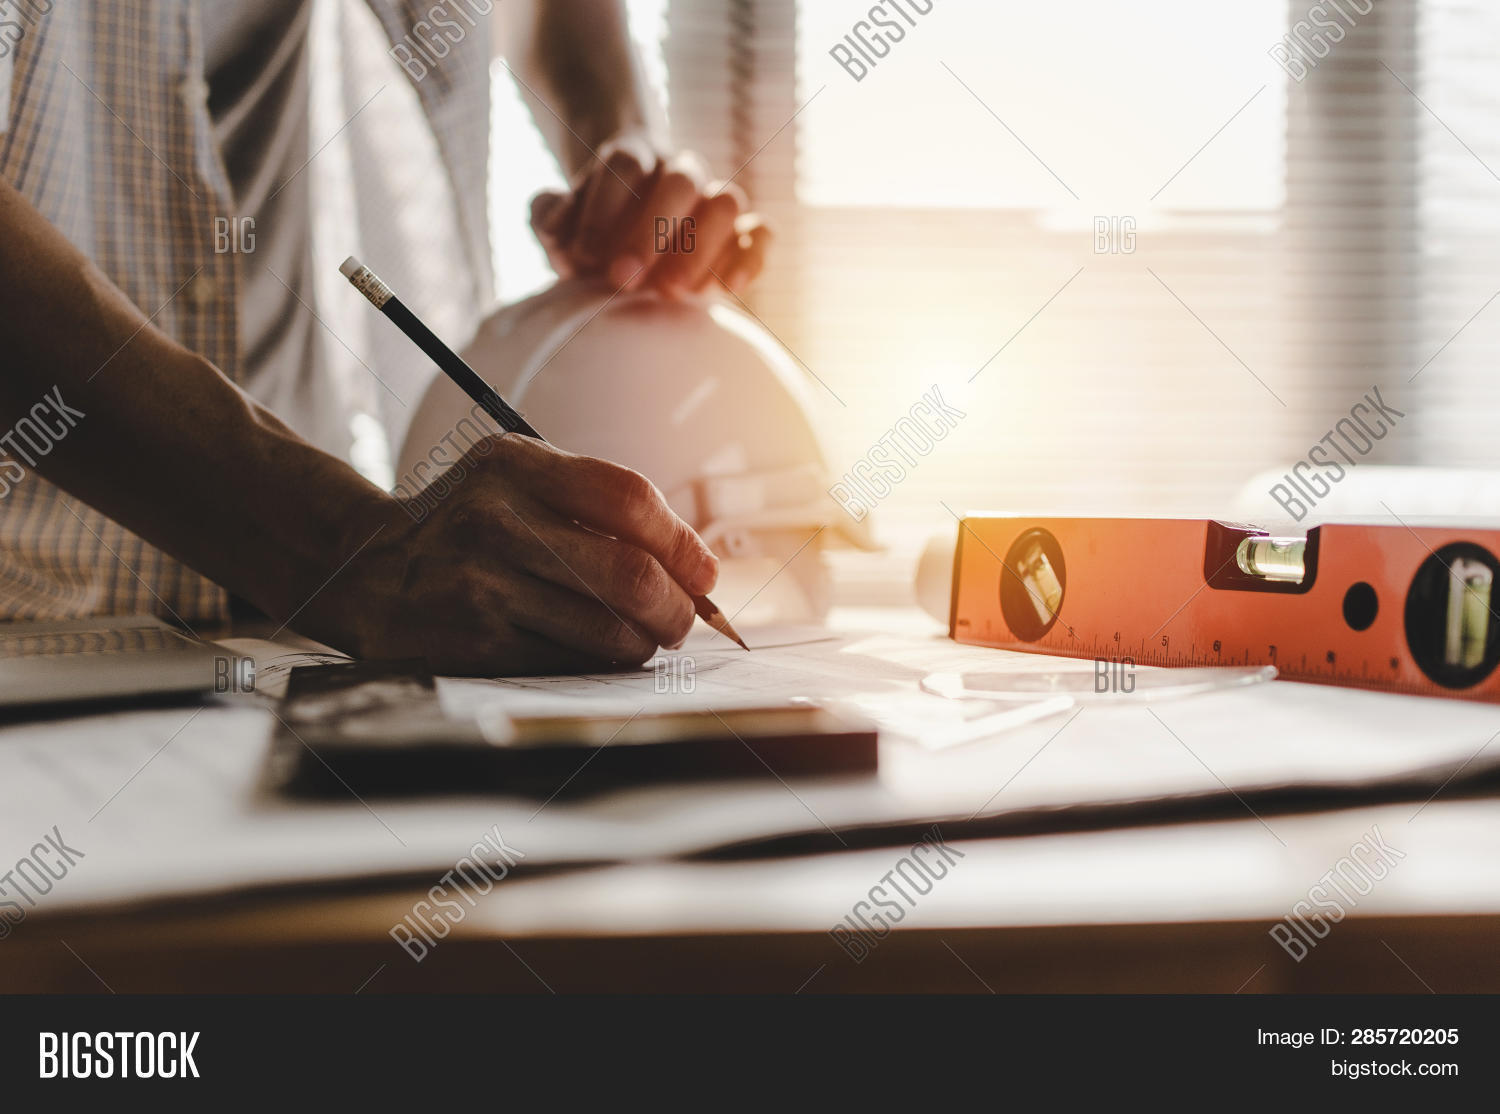 Hand Professional Architect, Engineer Or Interior Hands Drawing With Blueprint On Workplace Desk In